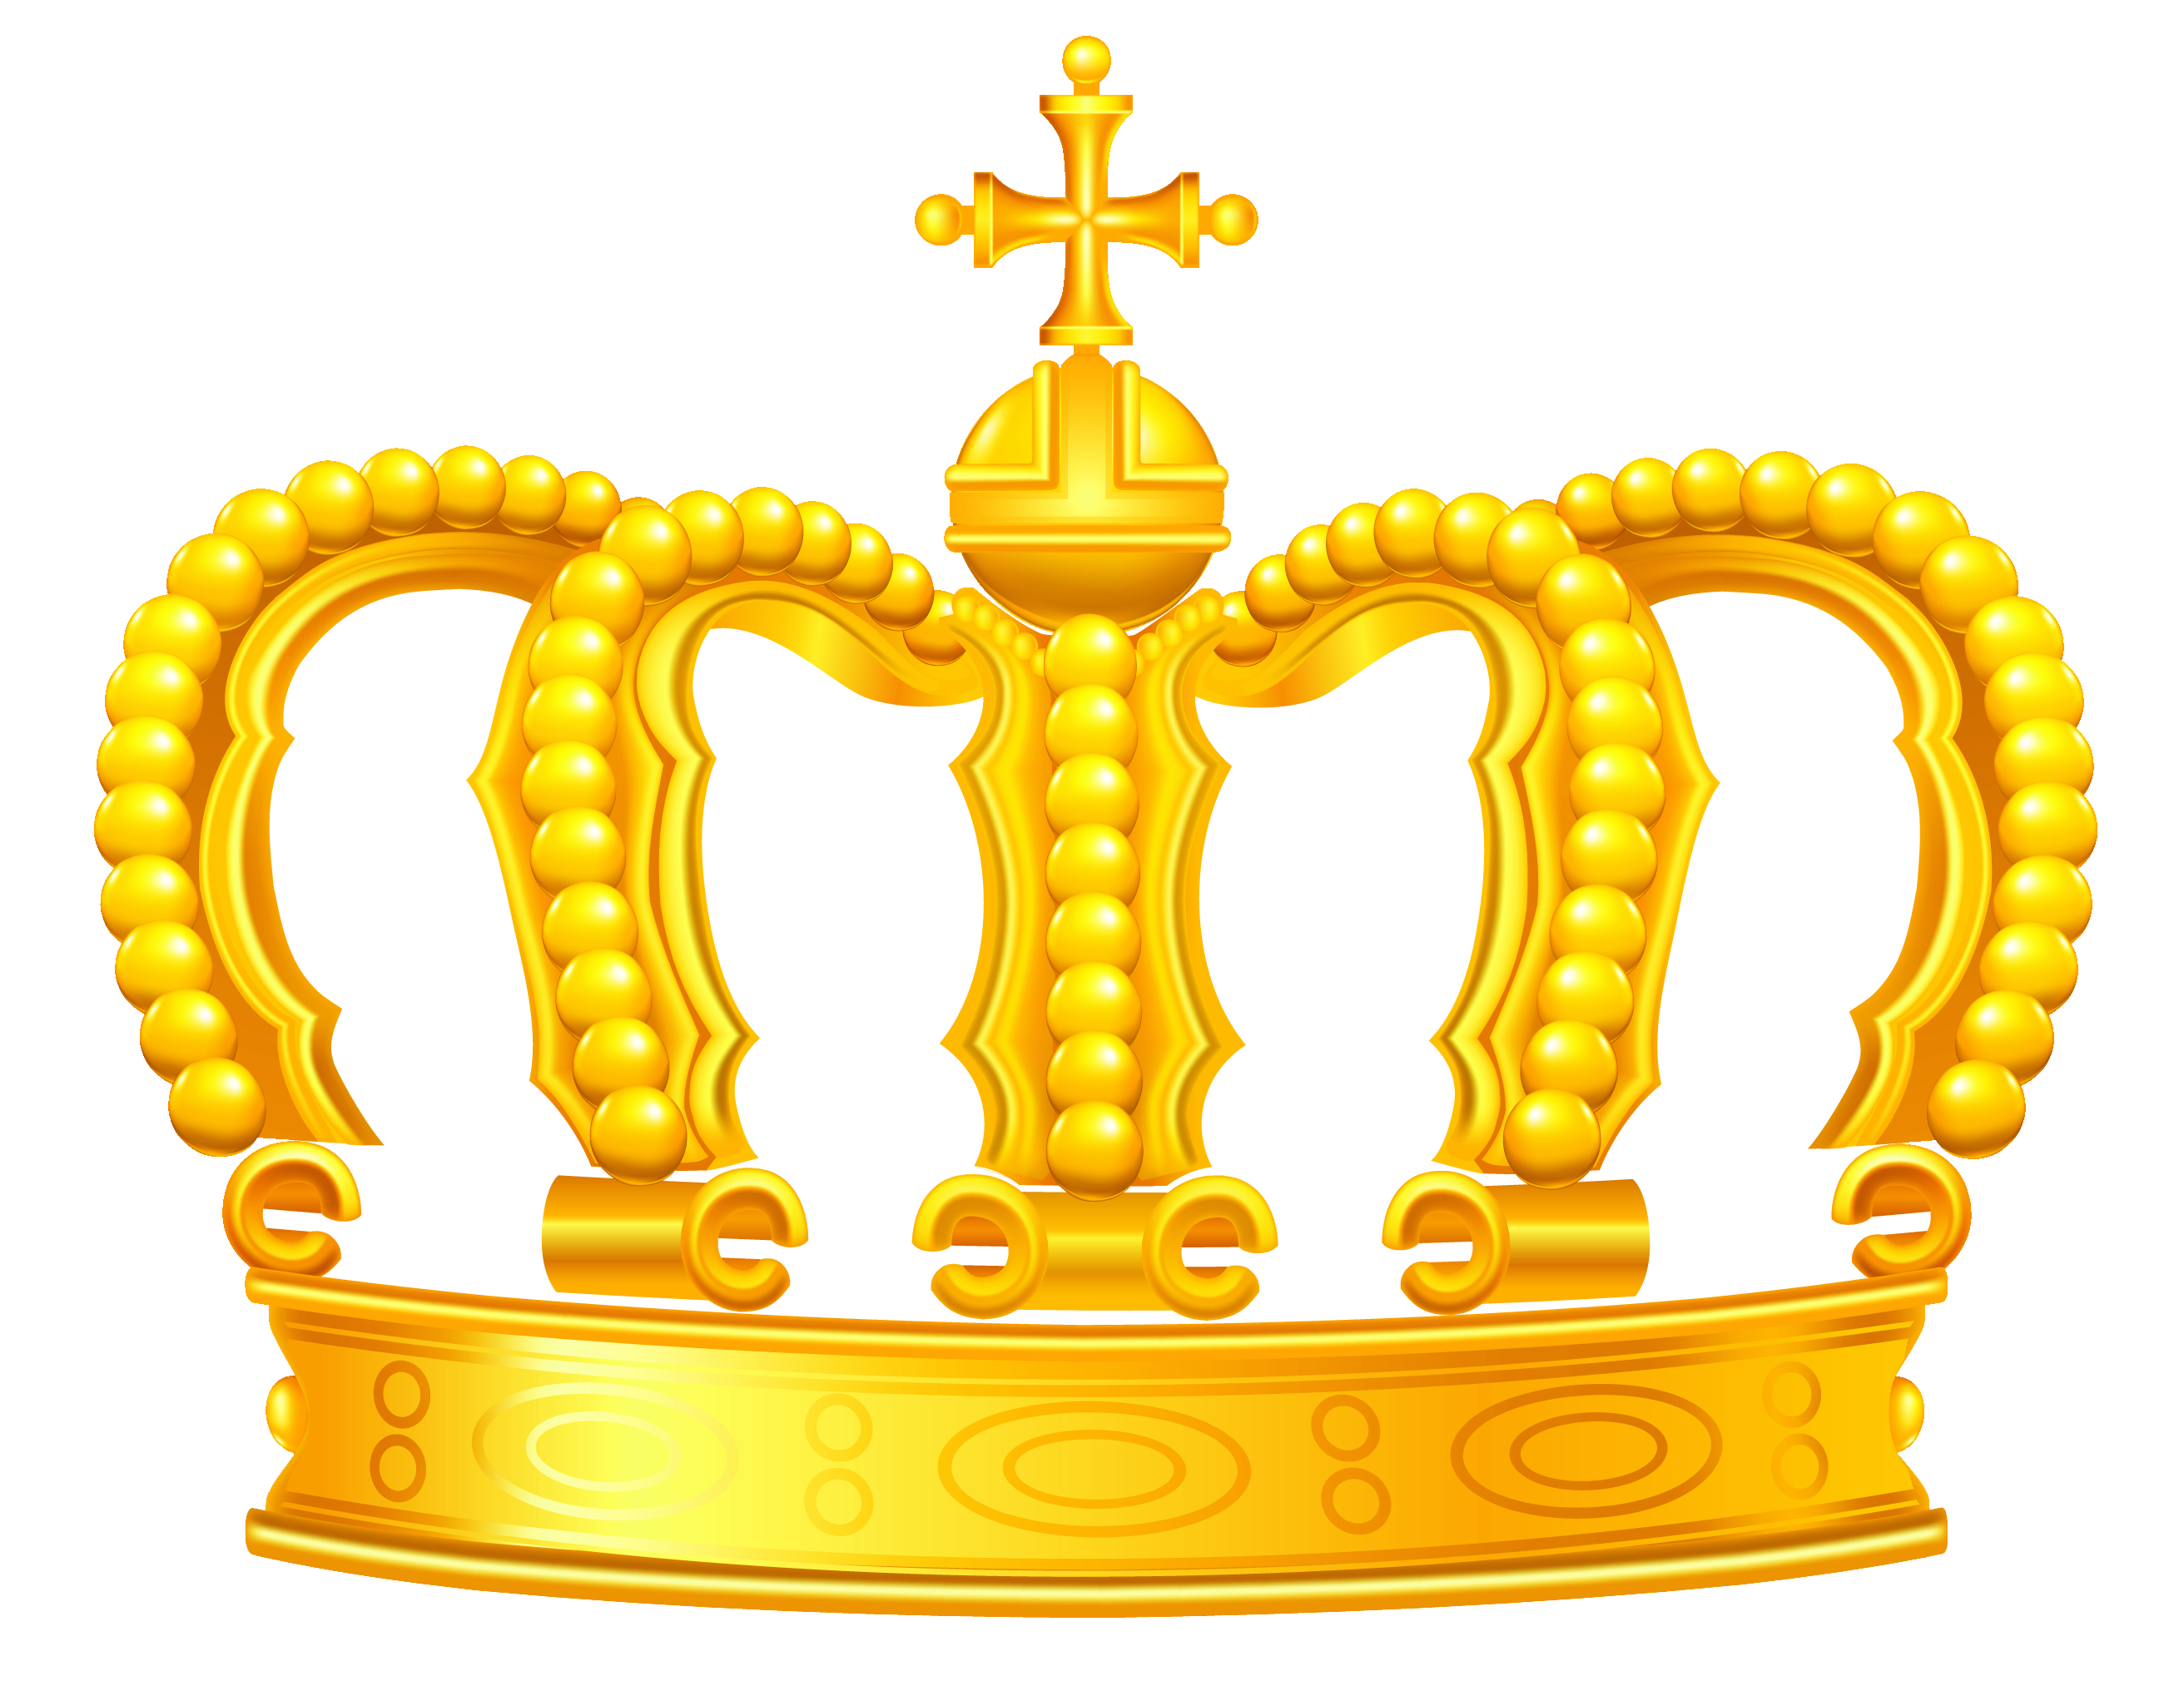 Queen with crown clipart clipart royalty free Gold Crown PNG Clipart clipart royalty free